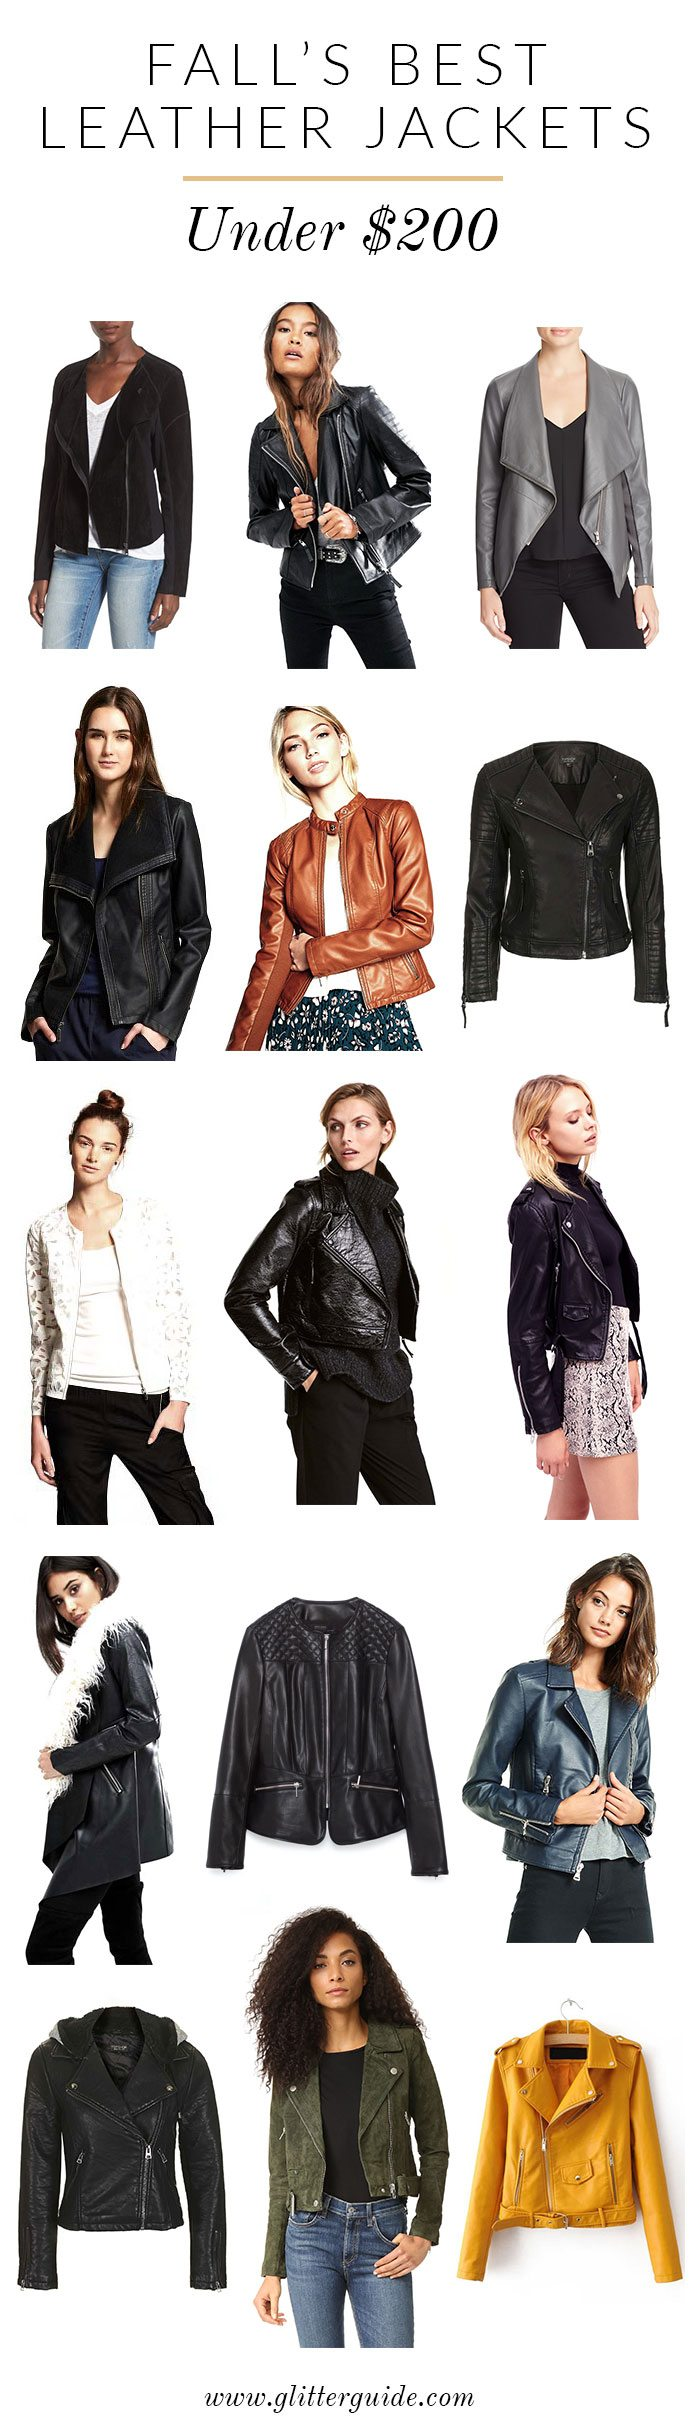 Fall's Best Leather Jackets Under $200